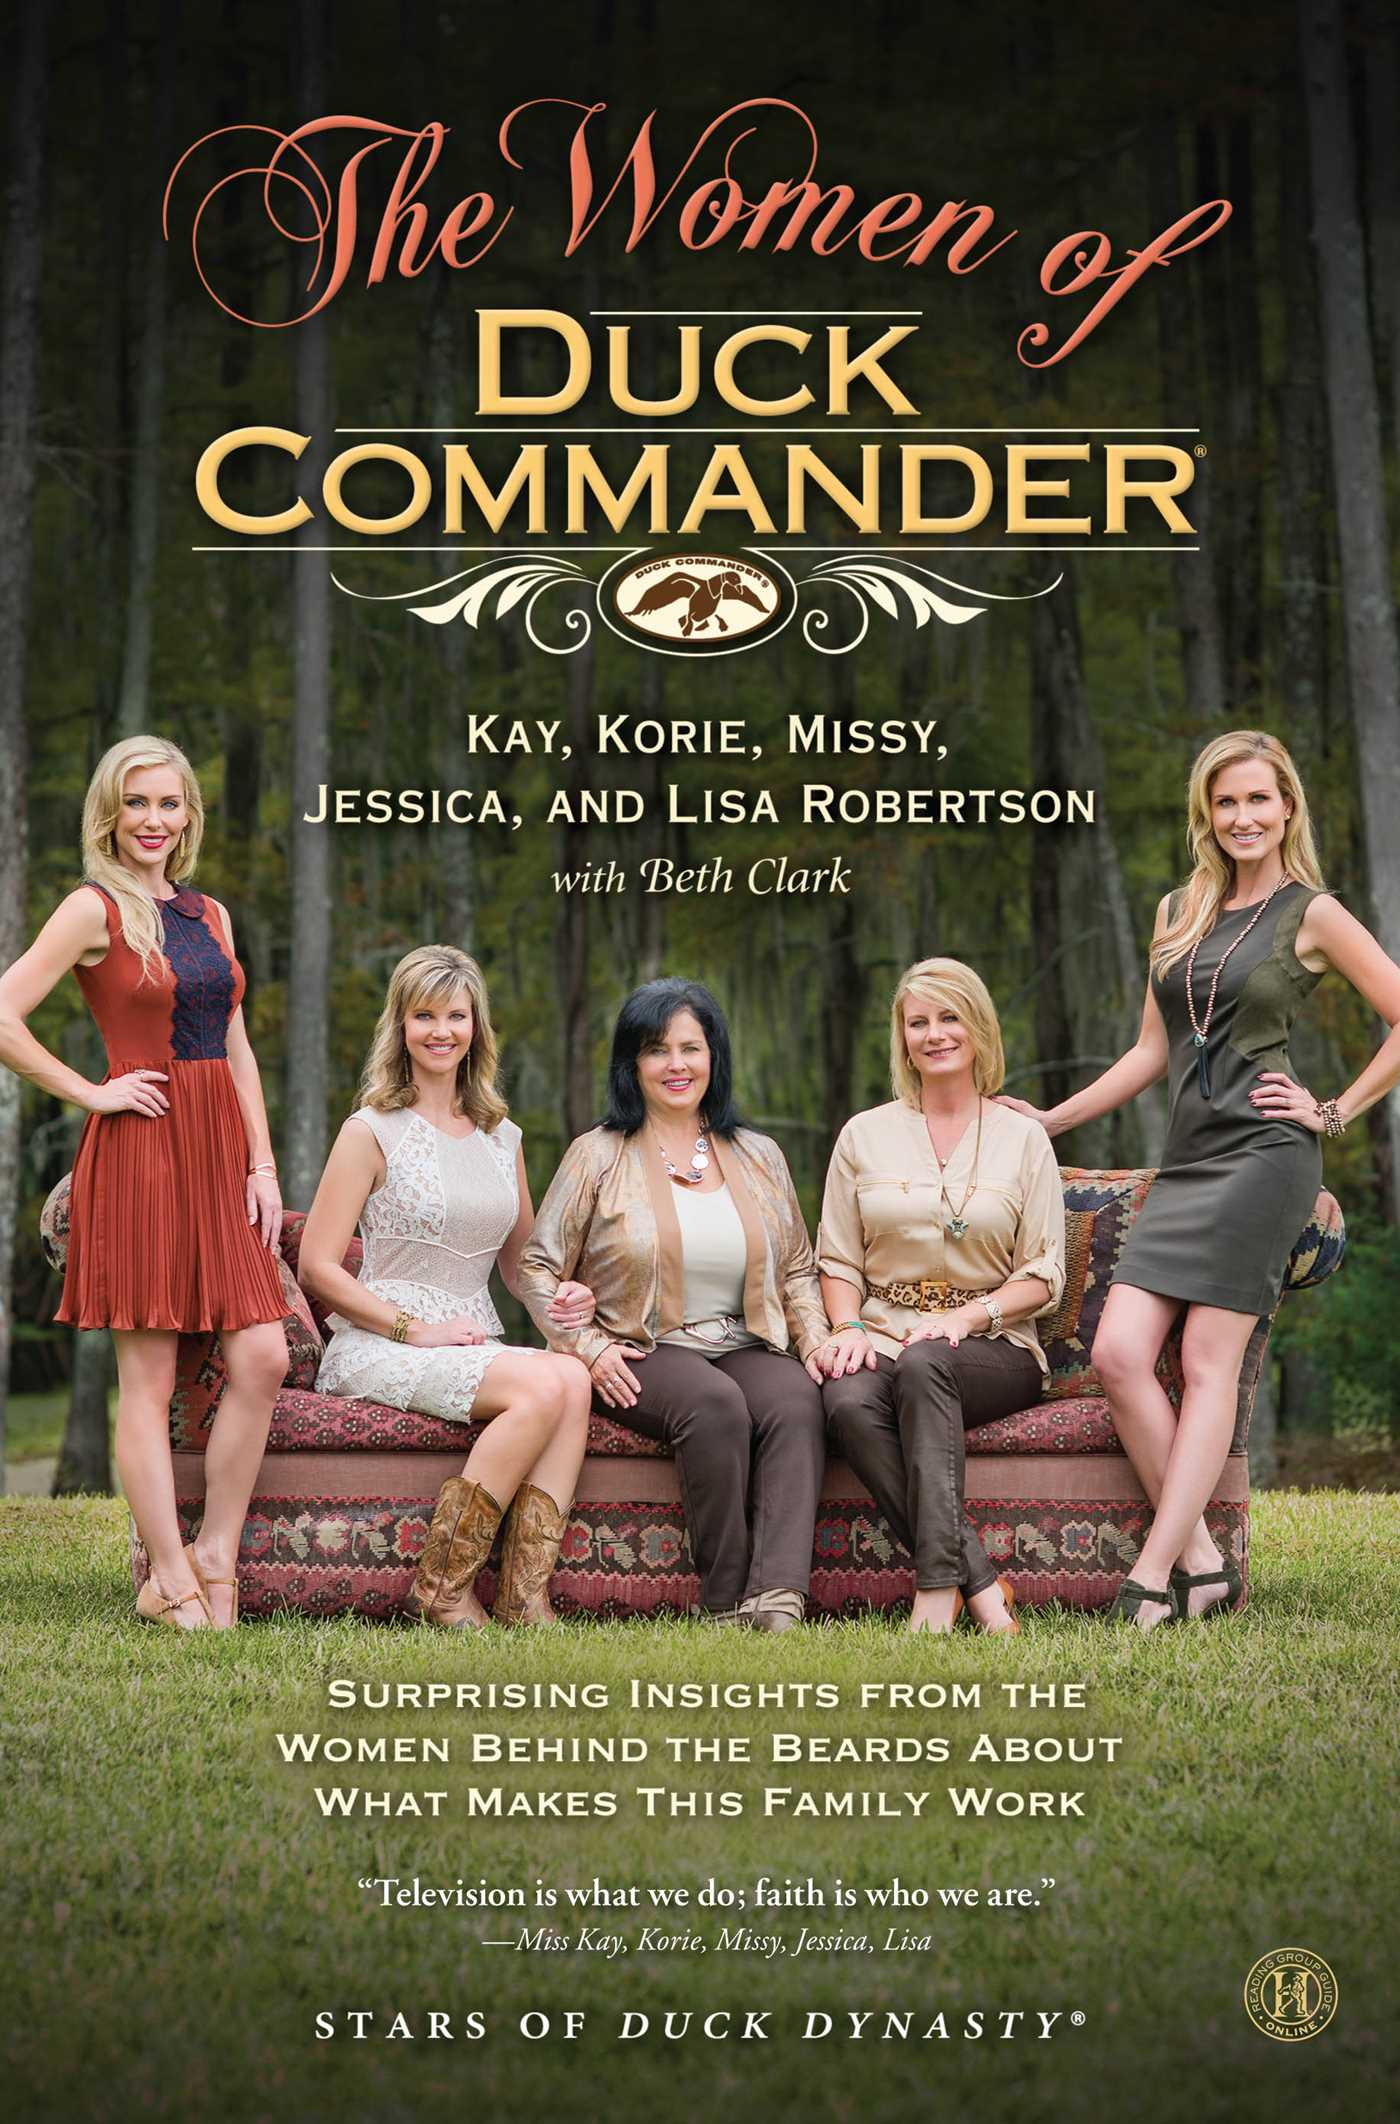 Women-of-duck-commander-9781476763576_hr